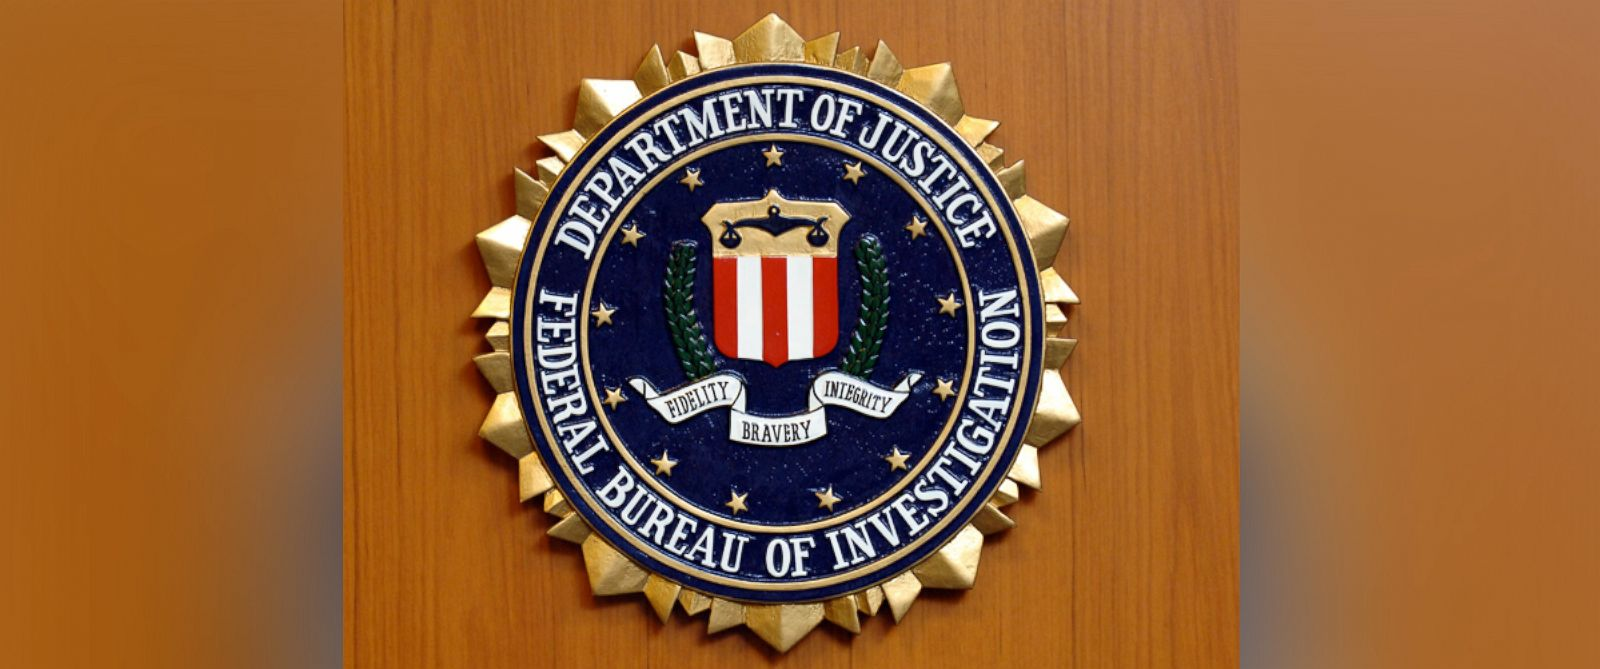 PHOTO: The Seal of the Federal Bureau of Investigation is the symbol of the FBI, Sept. 6, 2005.